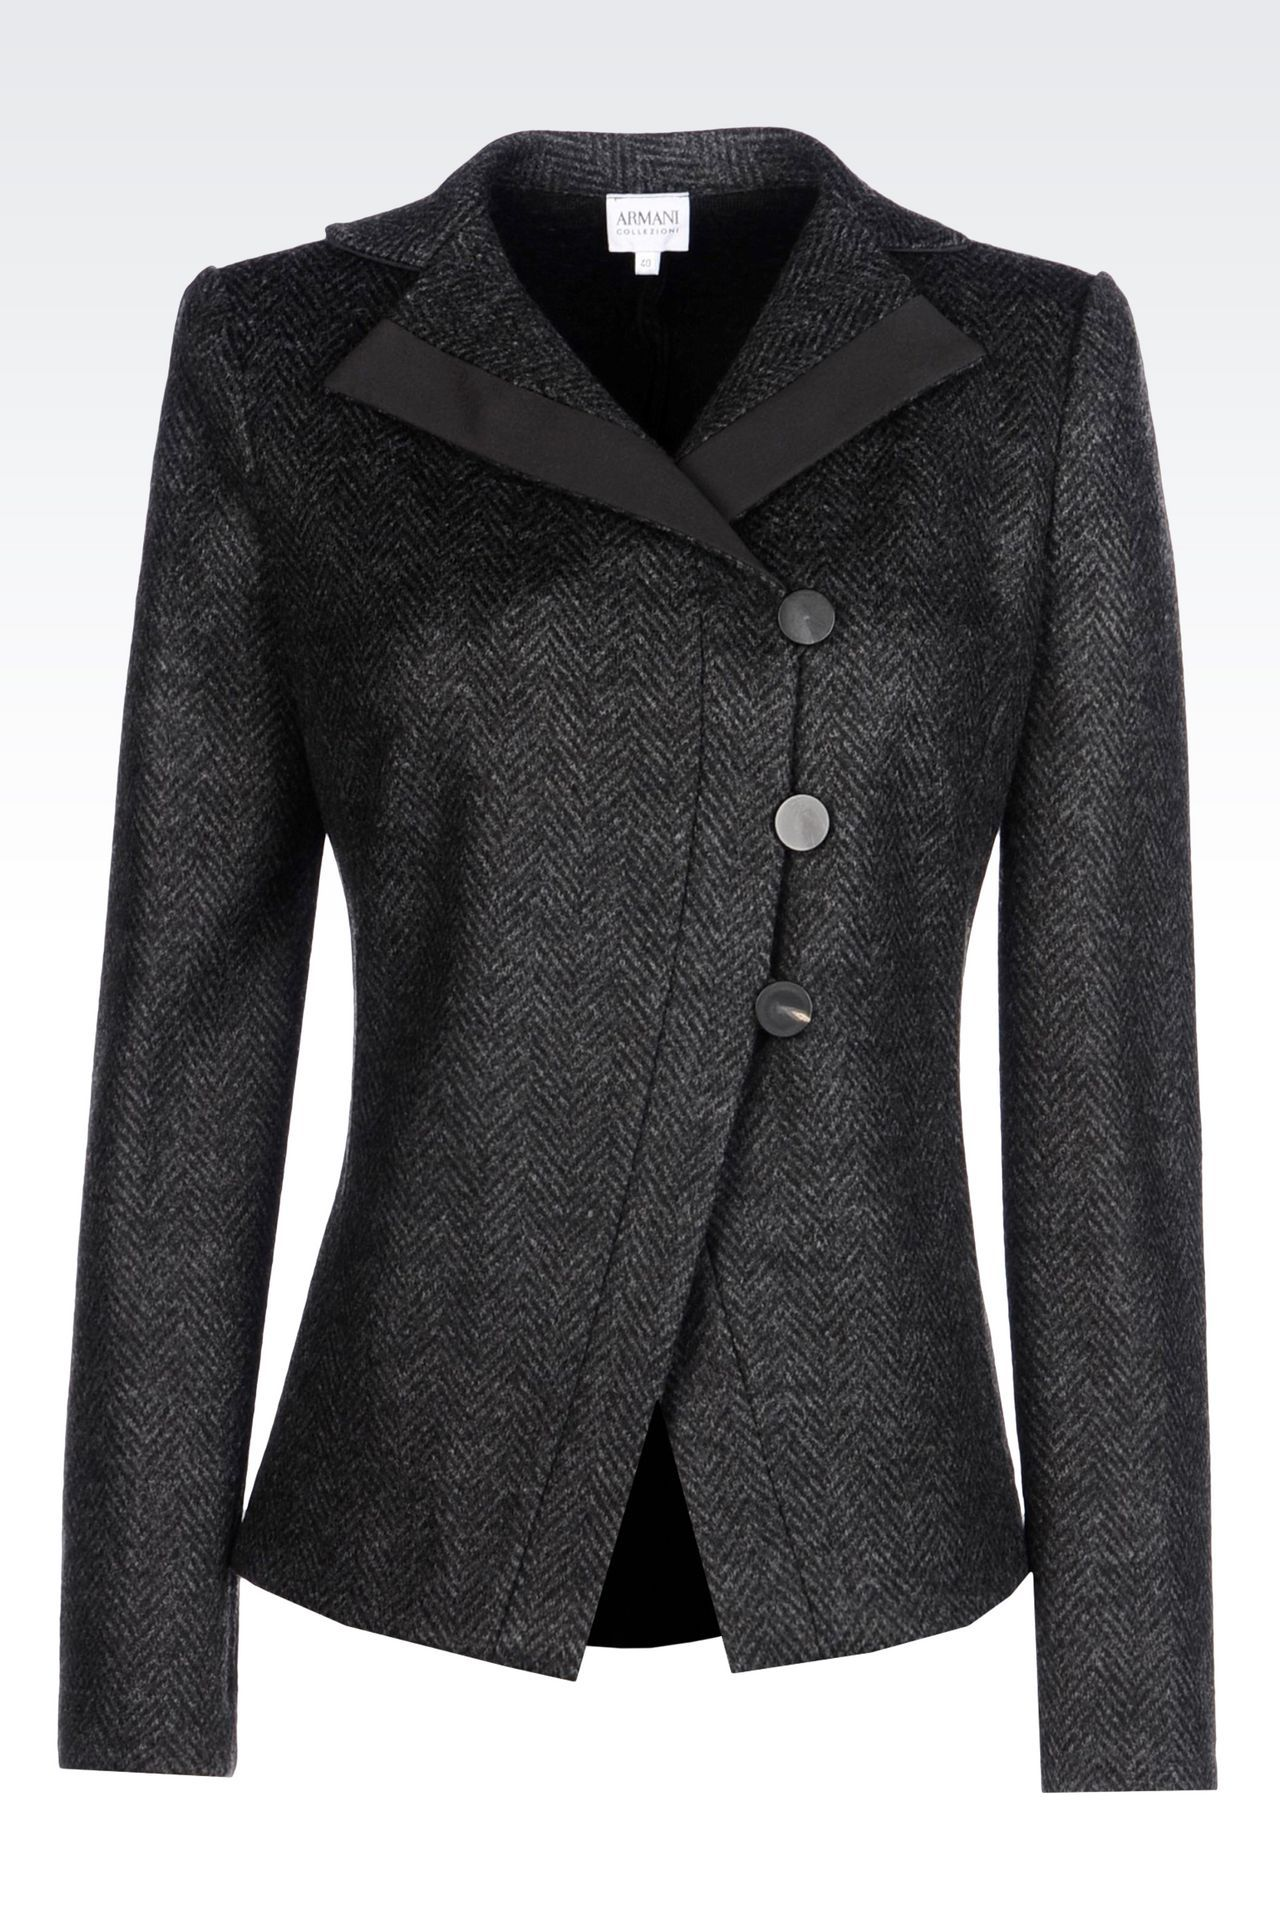 5a30643c JACKET IN CHEVRON DESIGN JACQUARD WOOL BLEND: Dinner jackets ...